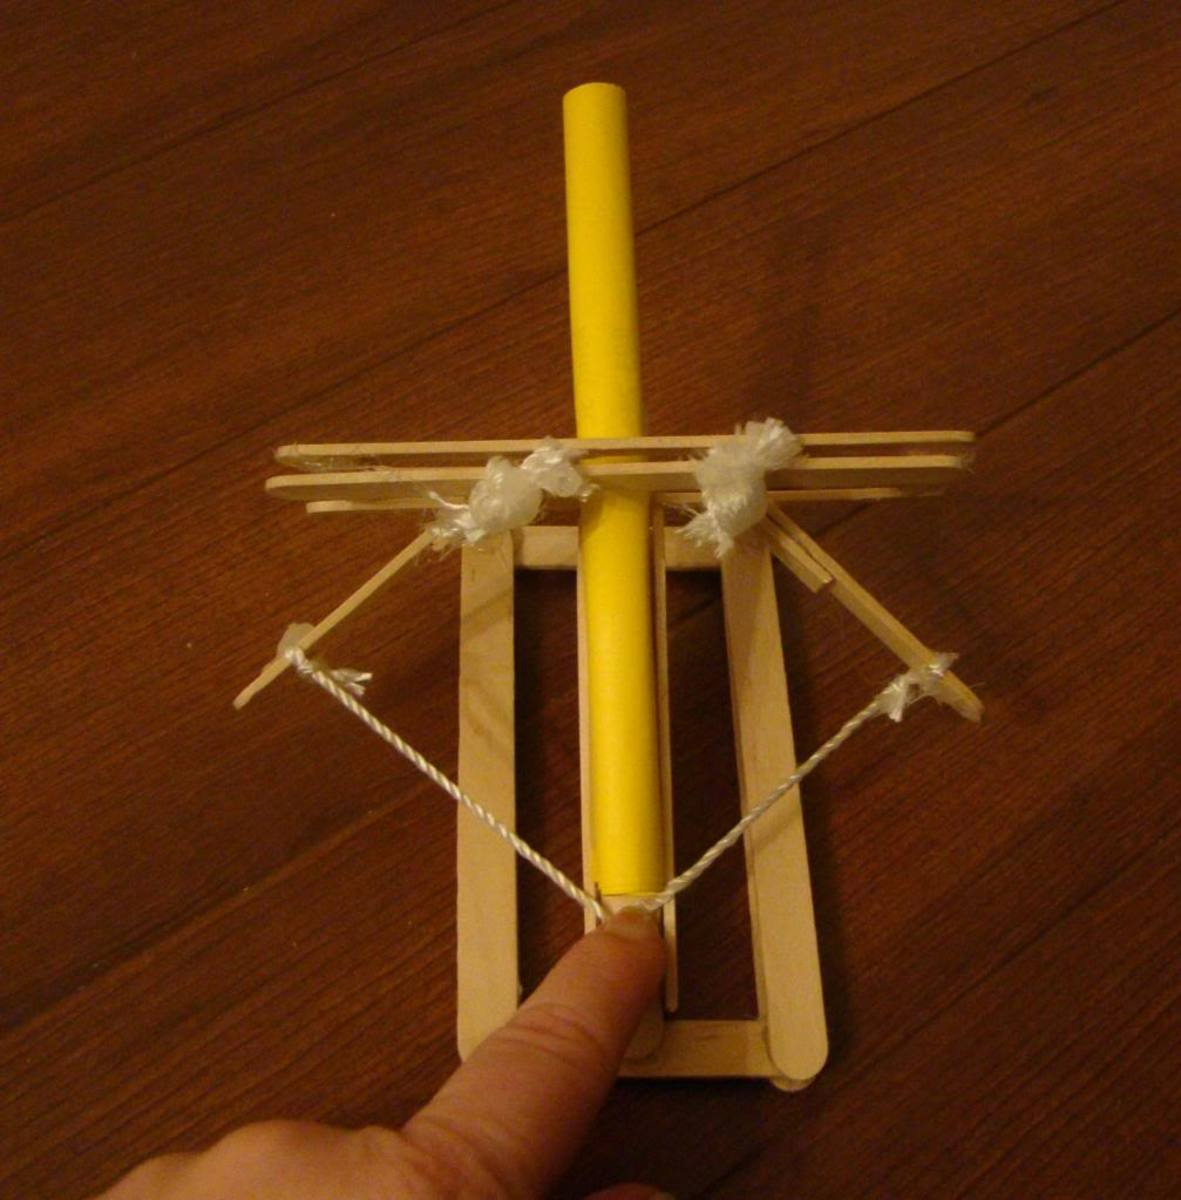 Homemade Ballista Catapult with homemade paper dart